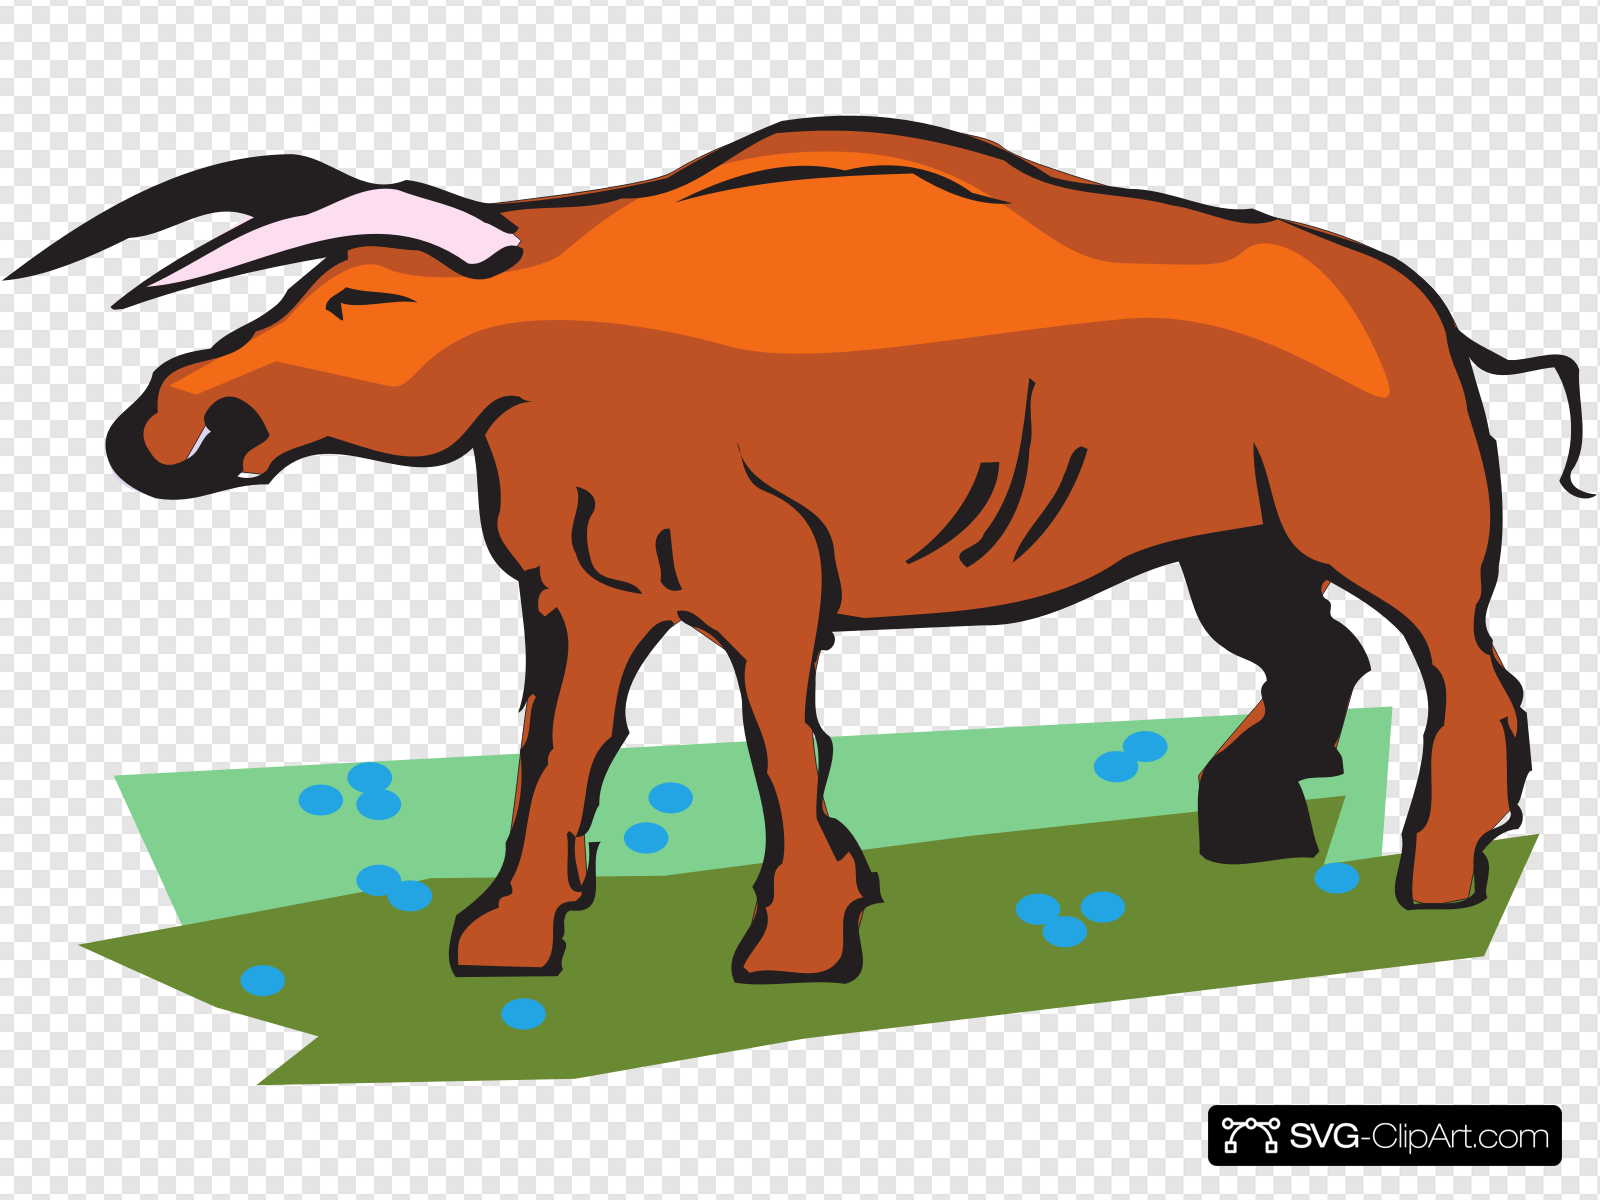 Bull In A Field Clip art, Icon and SVG.